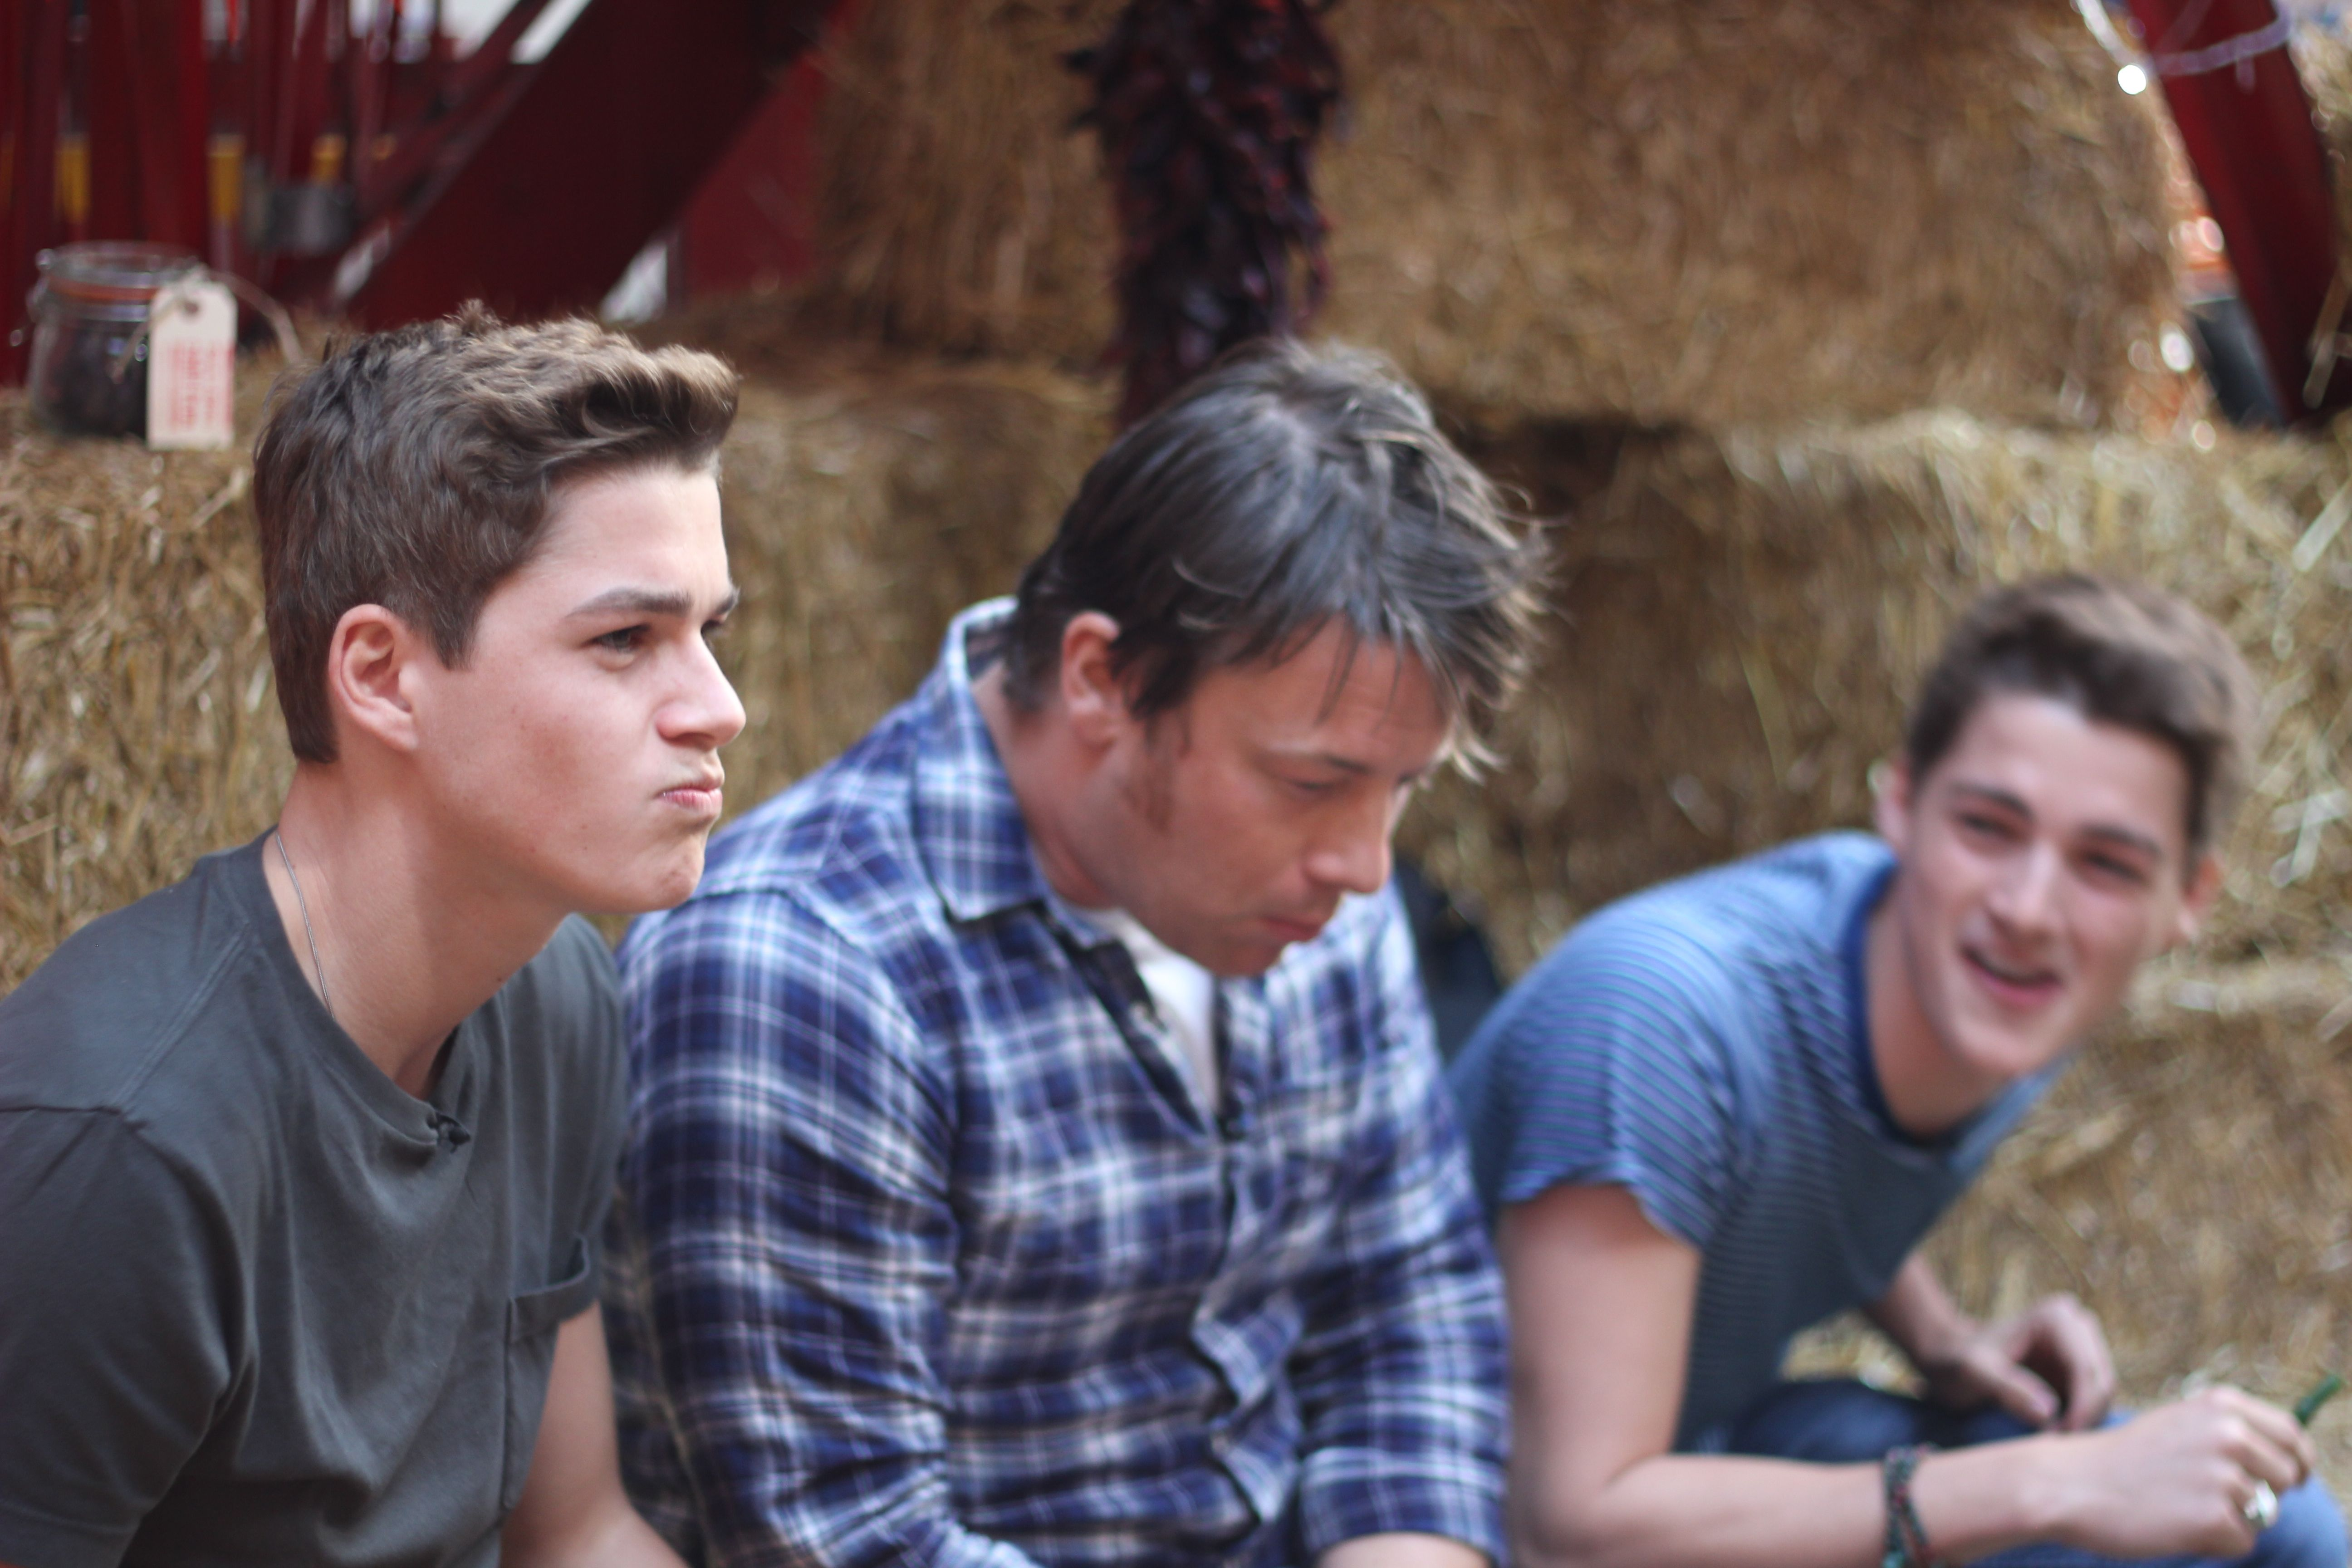 JacksGap & Jamie eating chillies and maybe regretting it